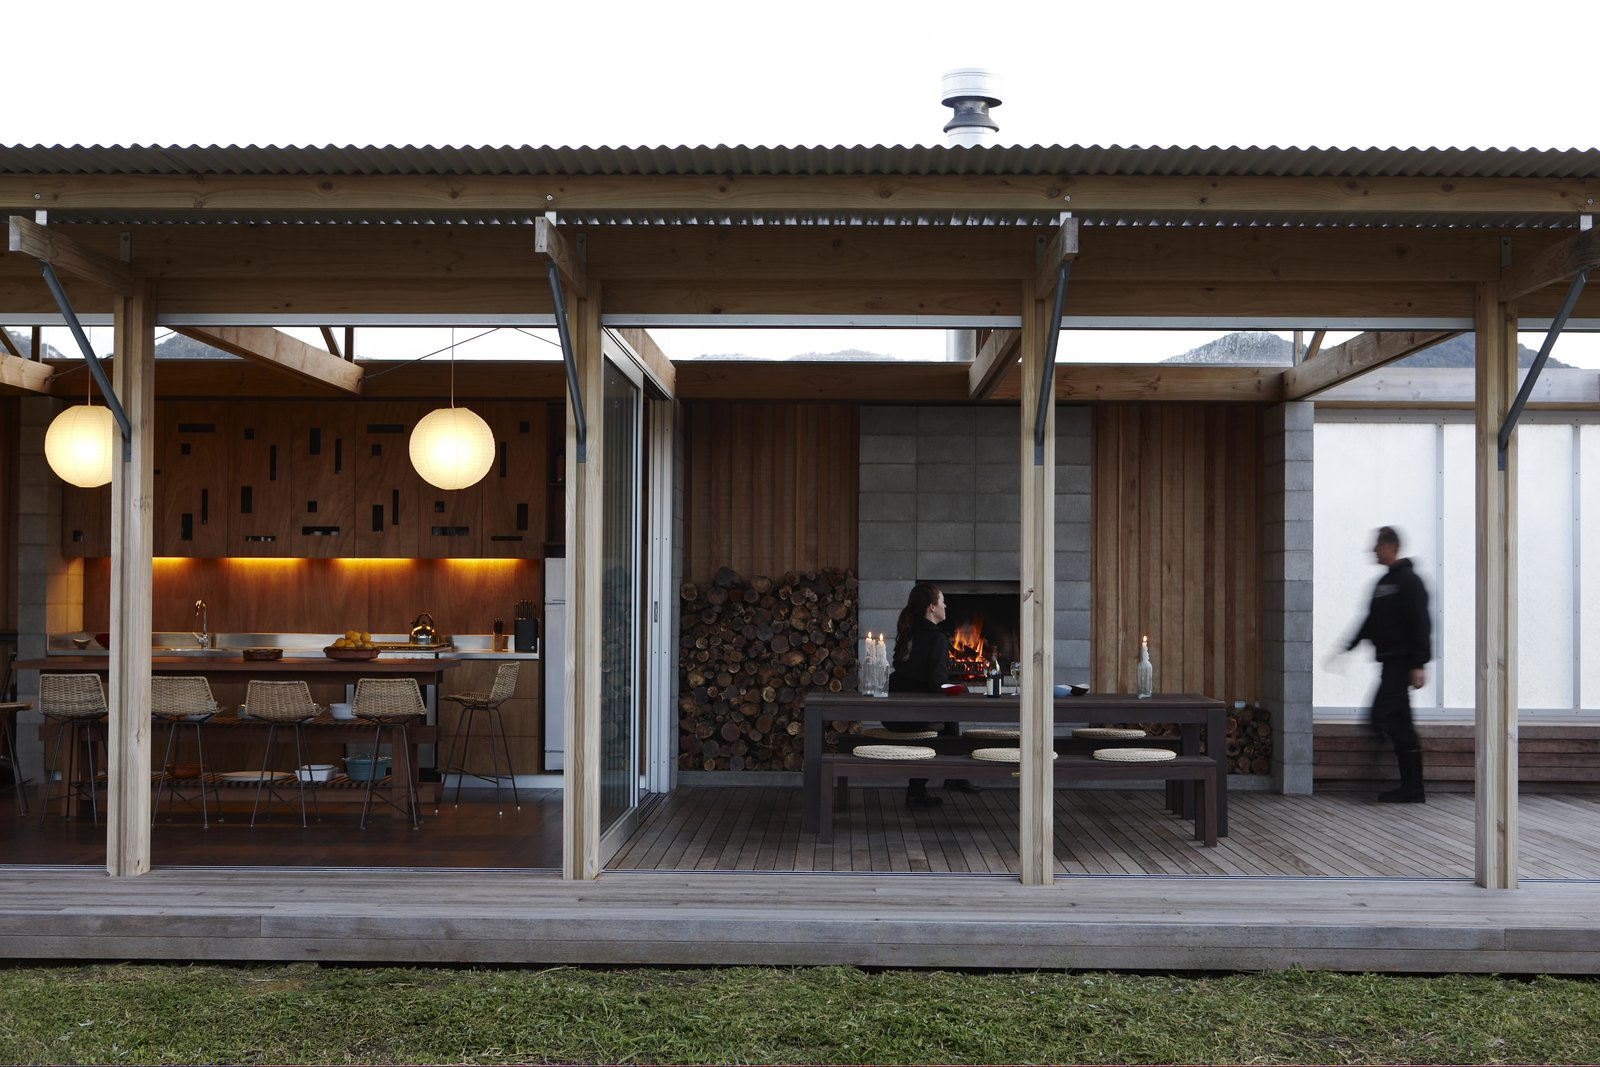 Outdoor, Wood, and Large Built to go off the grid, this remote beachside cottage can open up completely to the outdoors with its series of movable wall-sized glass panels and screens. Designed by Herbst Architects, the modest New Zealand bach comprises two rectangular pavilions built with mostly natural materials chosen for their durability, texture, and weathering characteristics.  Best Outdoor Photos from Off-the-Grid Island House in New Zealand Connects with the Outdoors